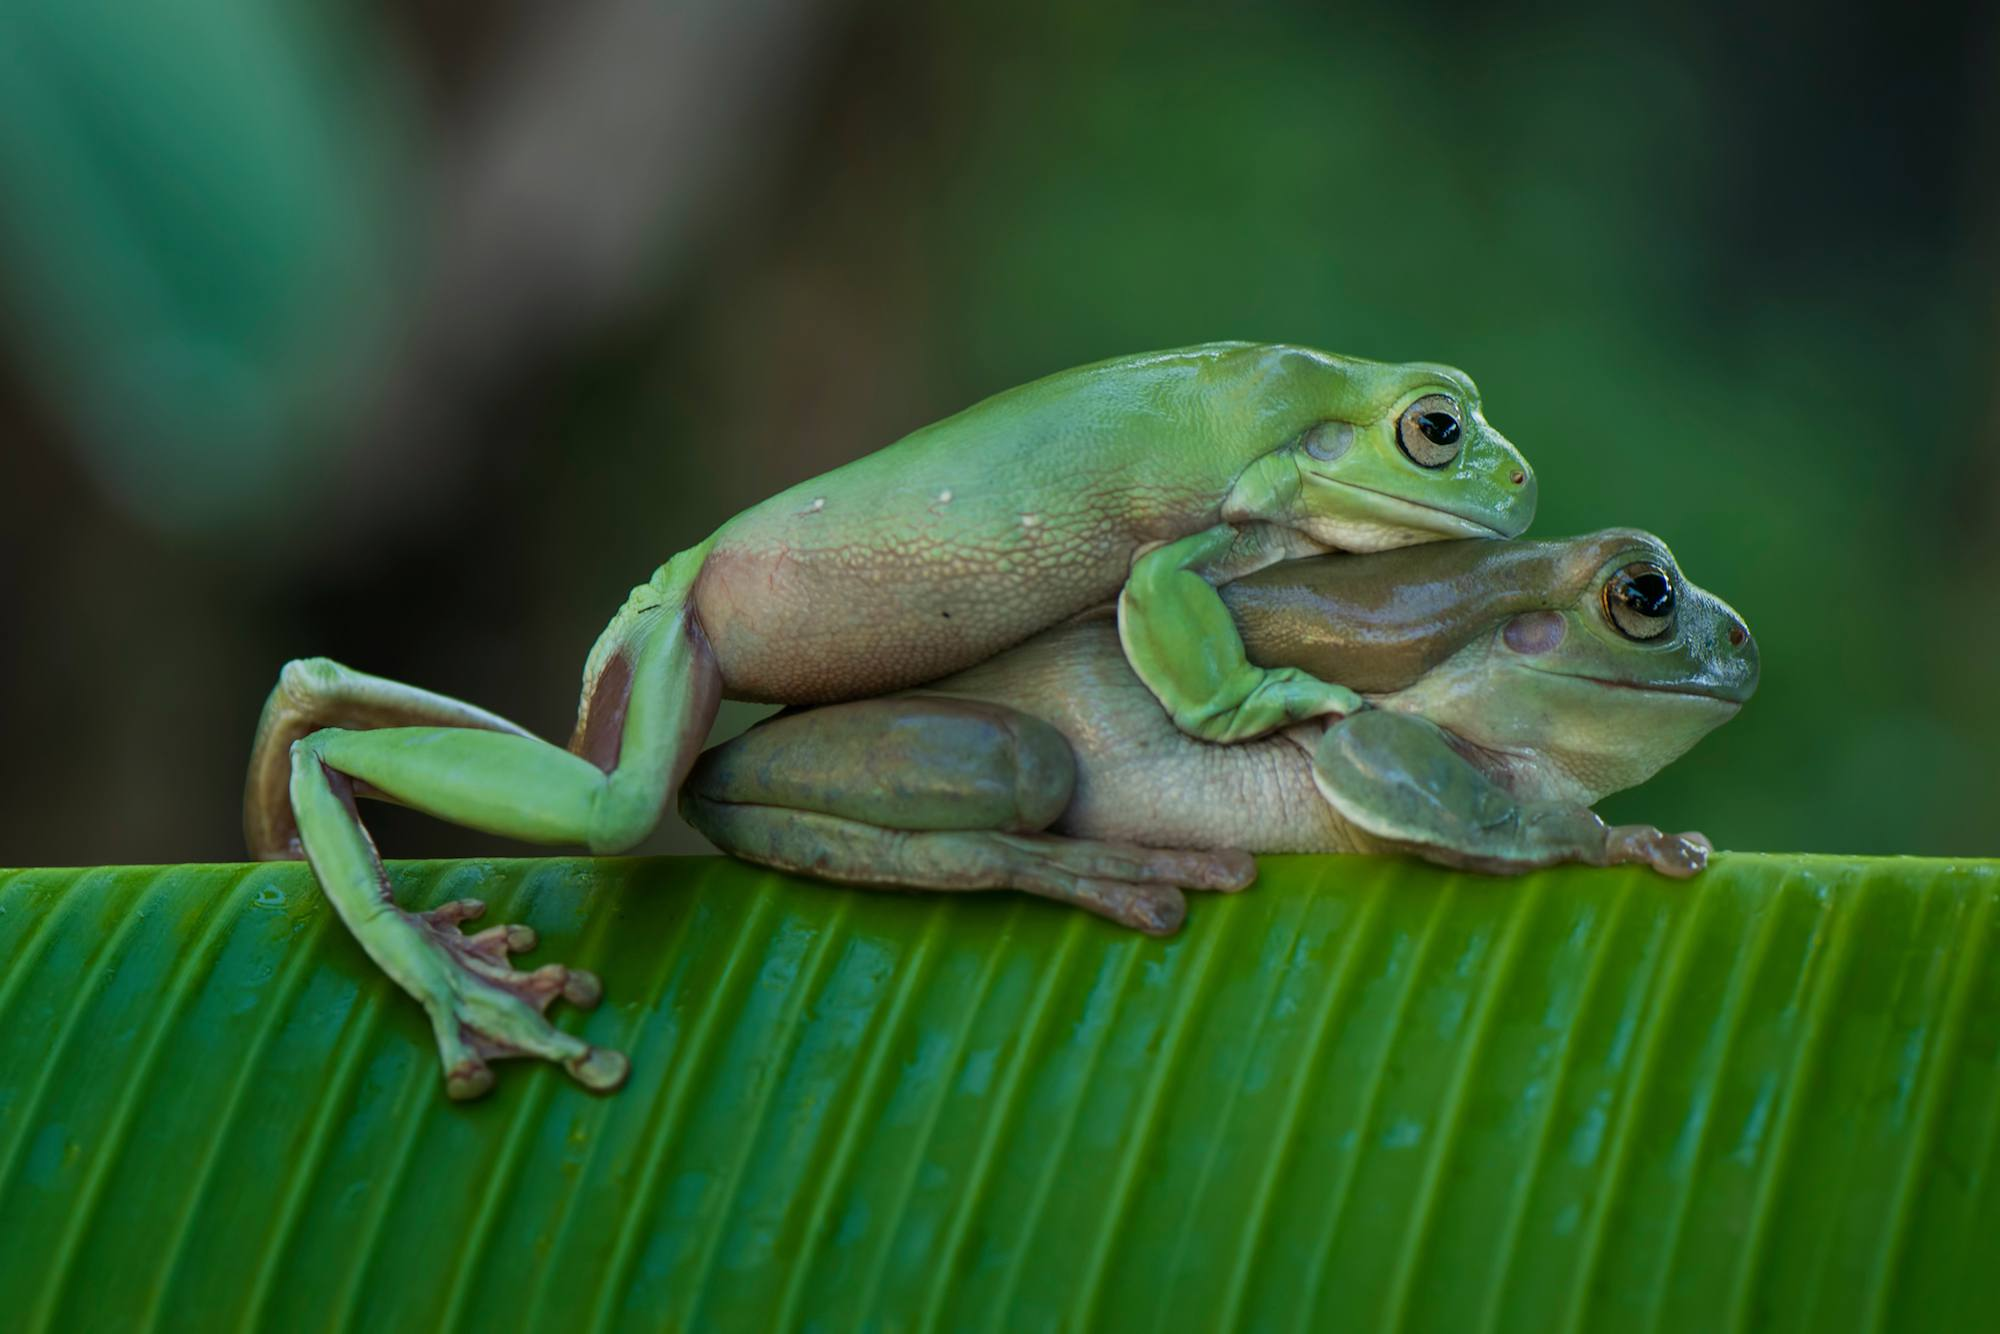 Close-up of frogs mating on a banana leaf